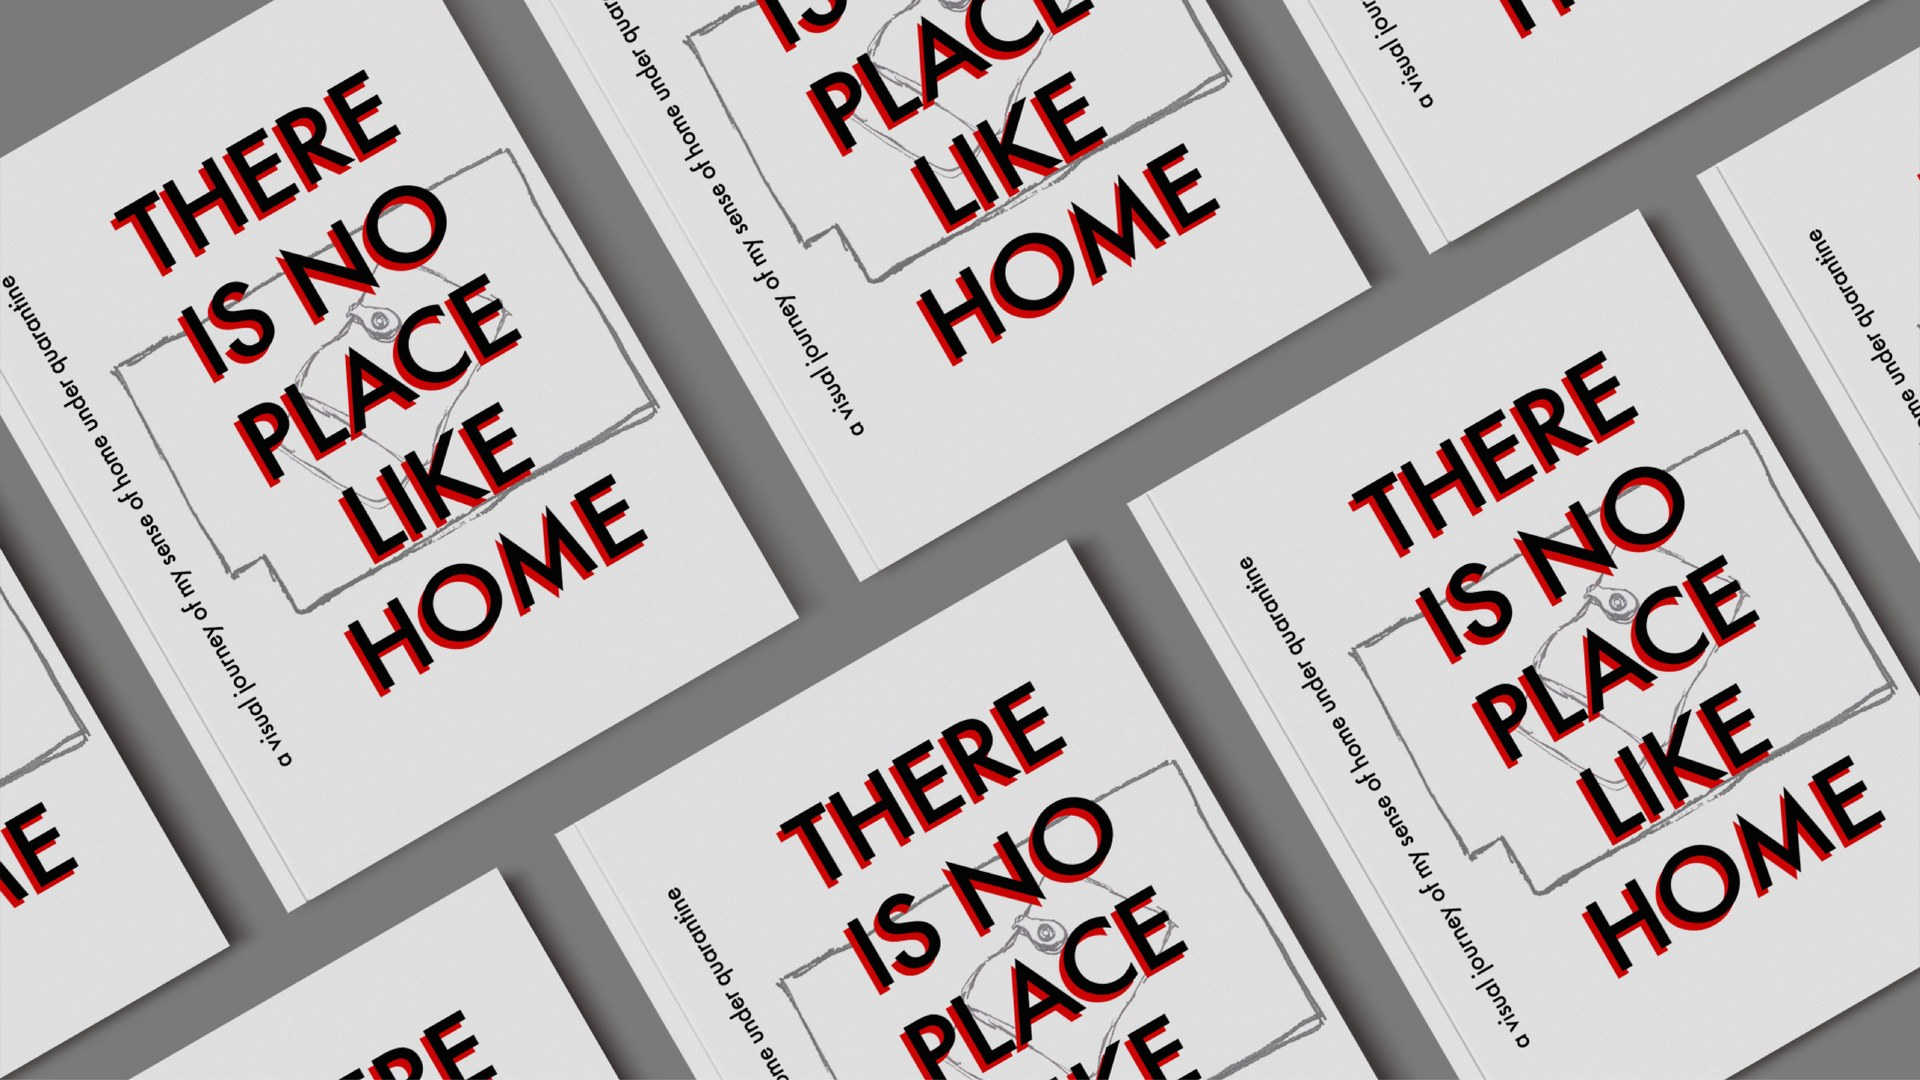 Covers of There Is No Place Like Home